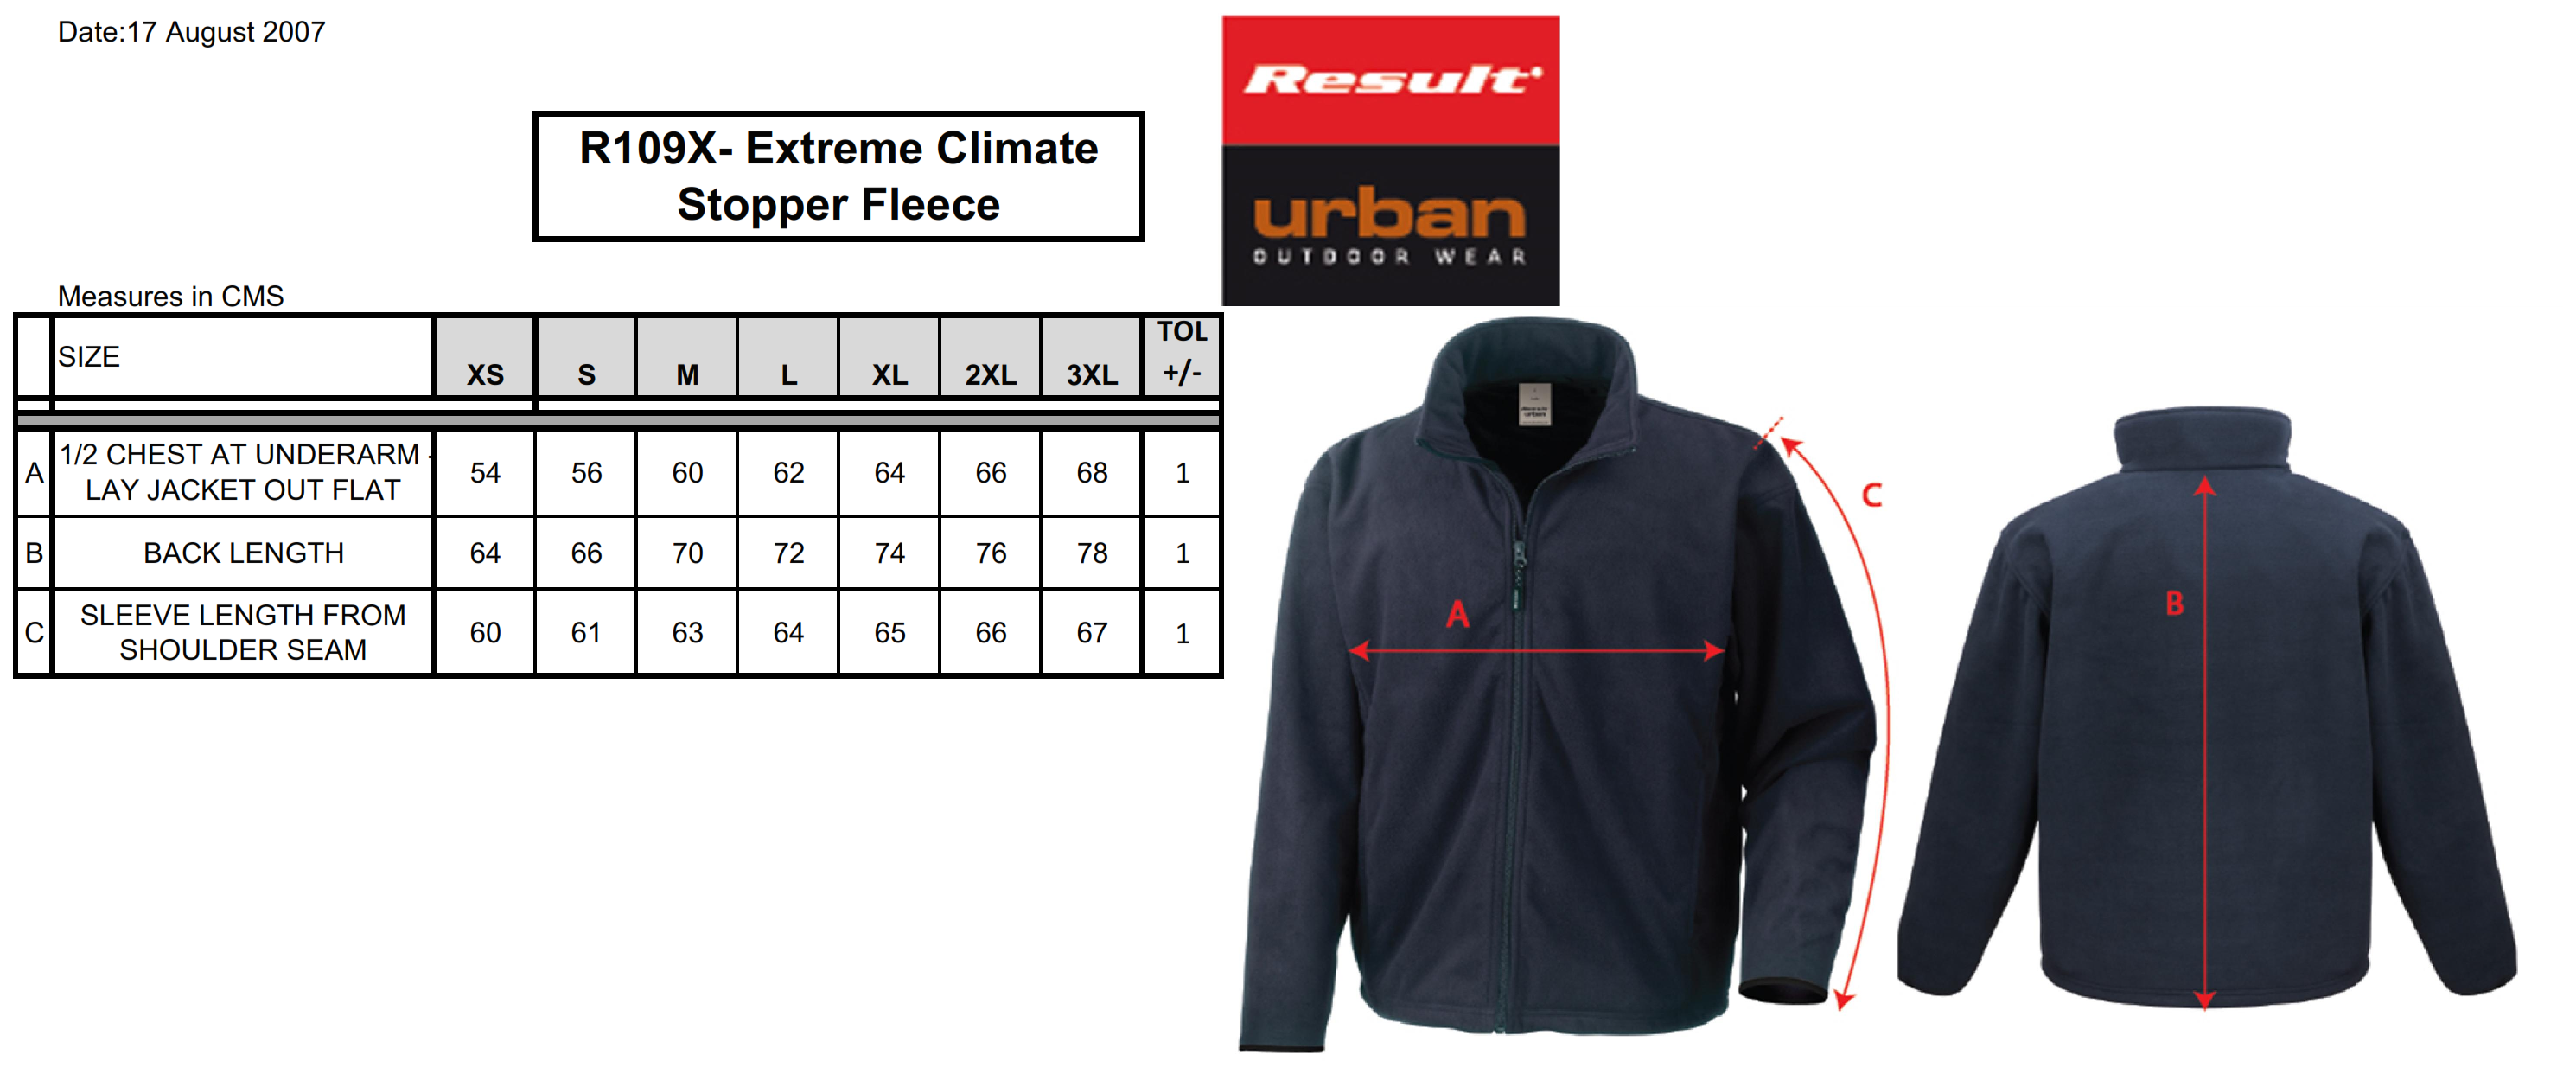 Result: Climate Stopper Water Resistant Fleece R109X